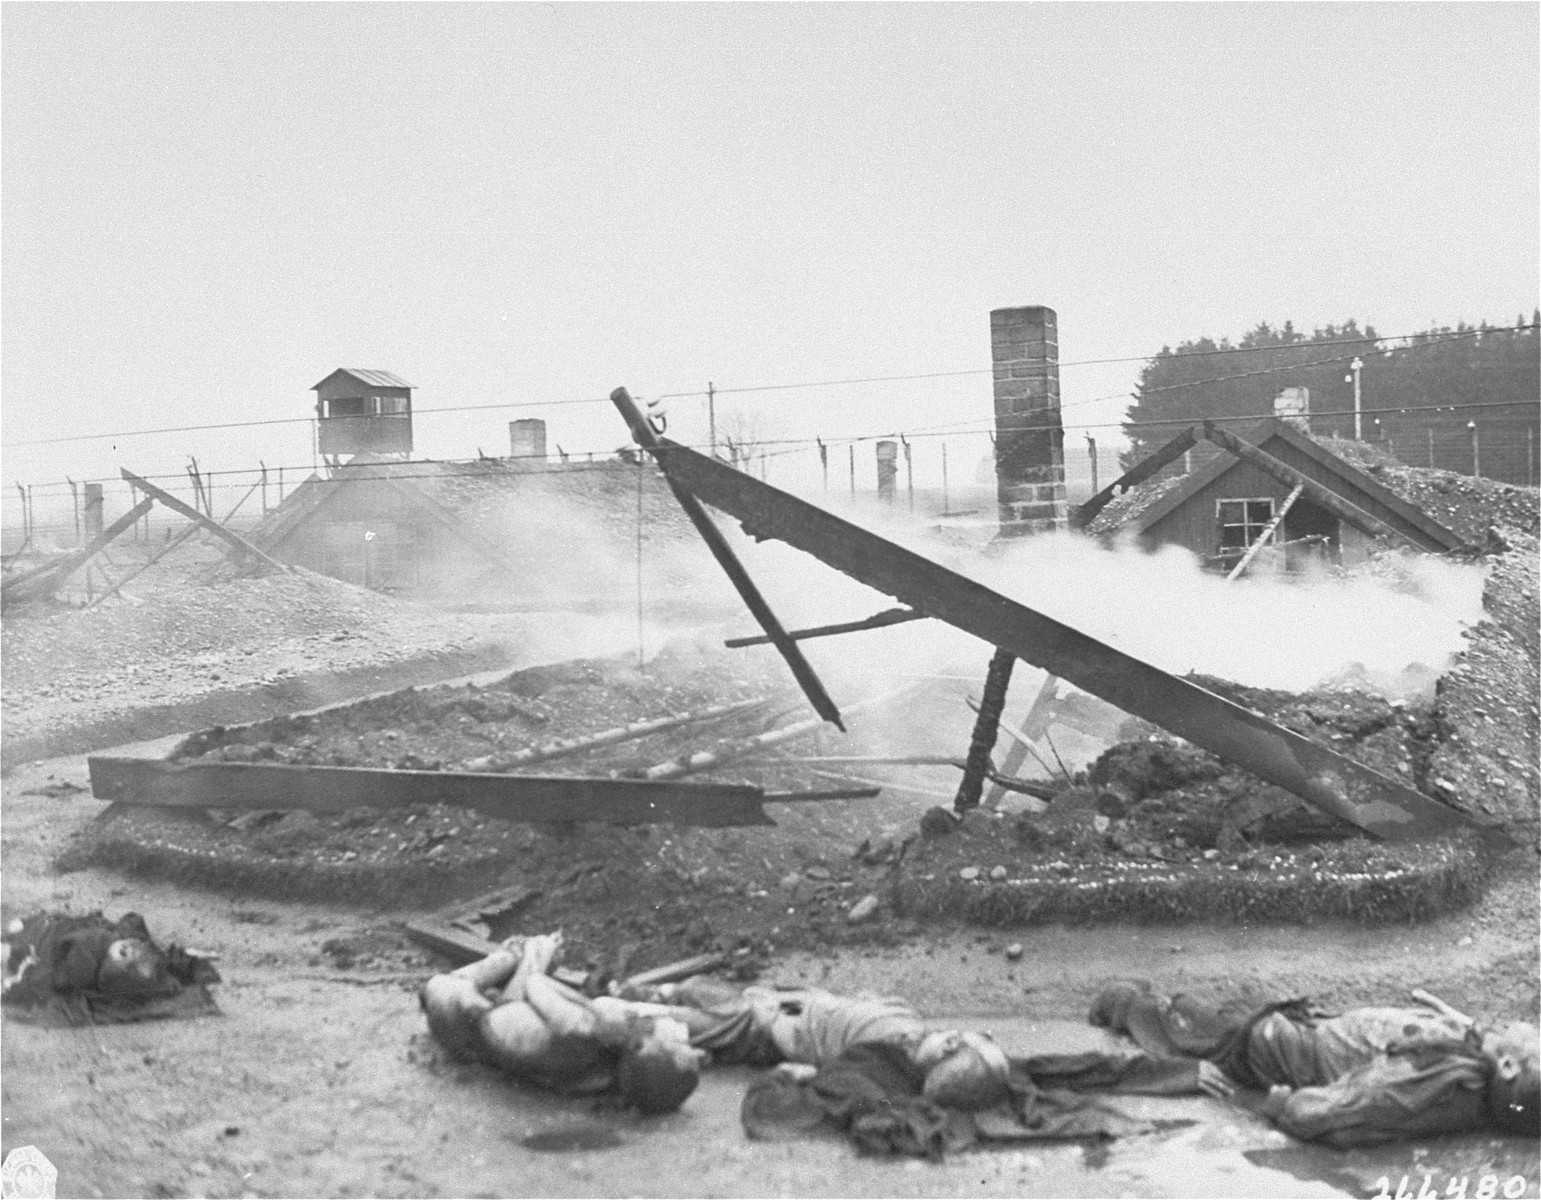 The bodies of slain Jewish slave laborers lie in the street in front of the smoldering ruins of a barracks that was razed by the SS during the evacuation of Hurlach.